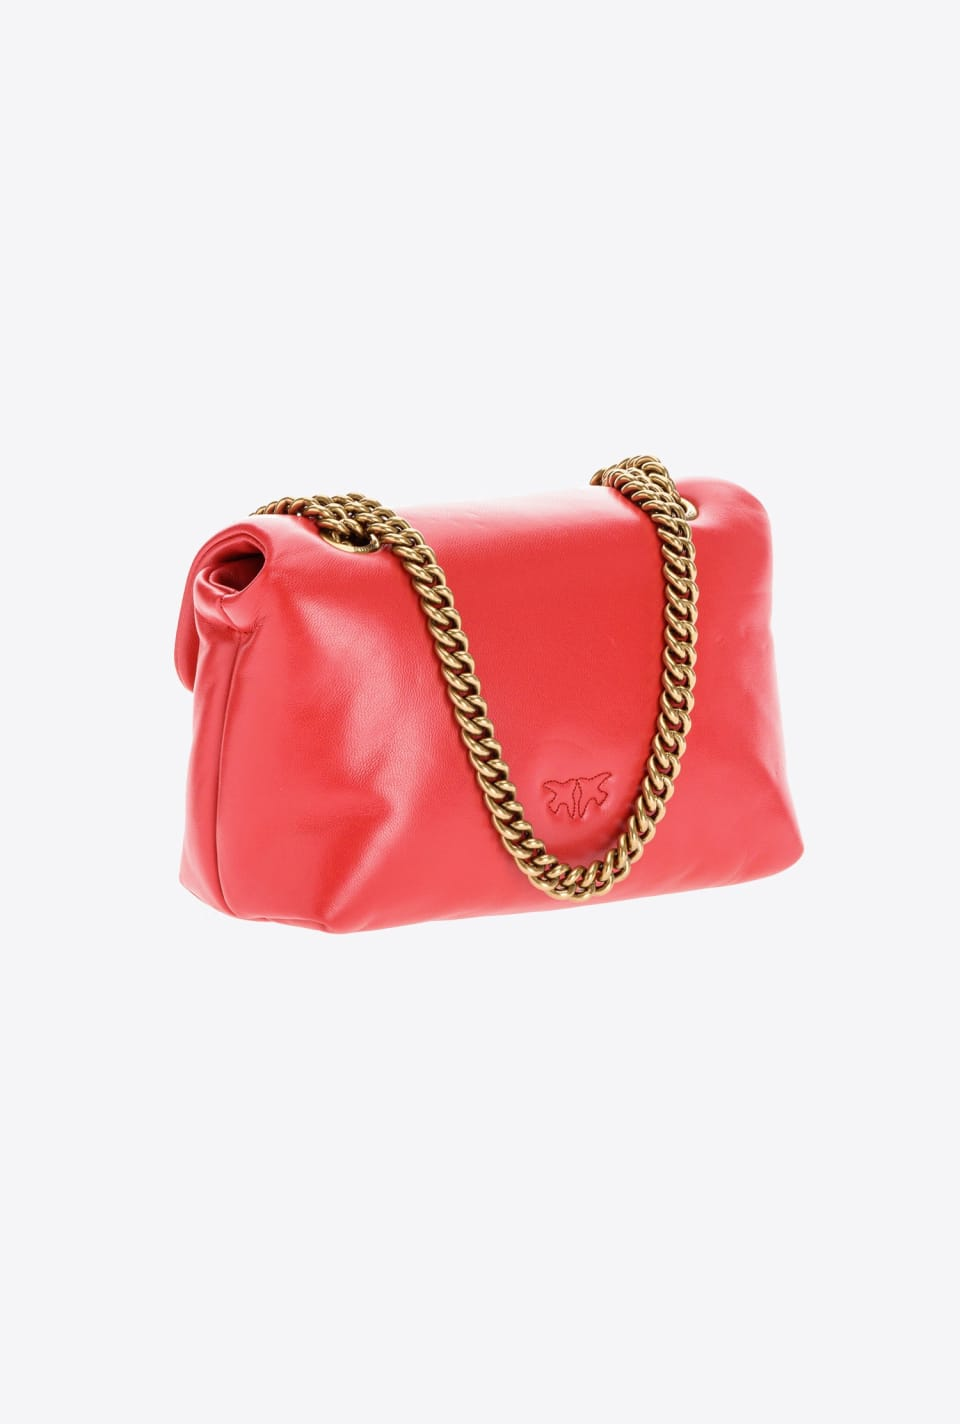 Mini Love Bag Puff Pinkoness Calling - Pinko